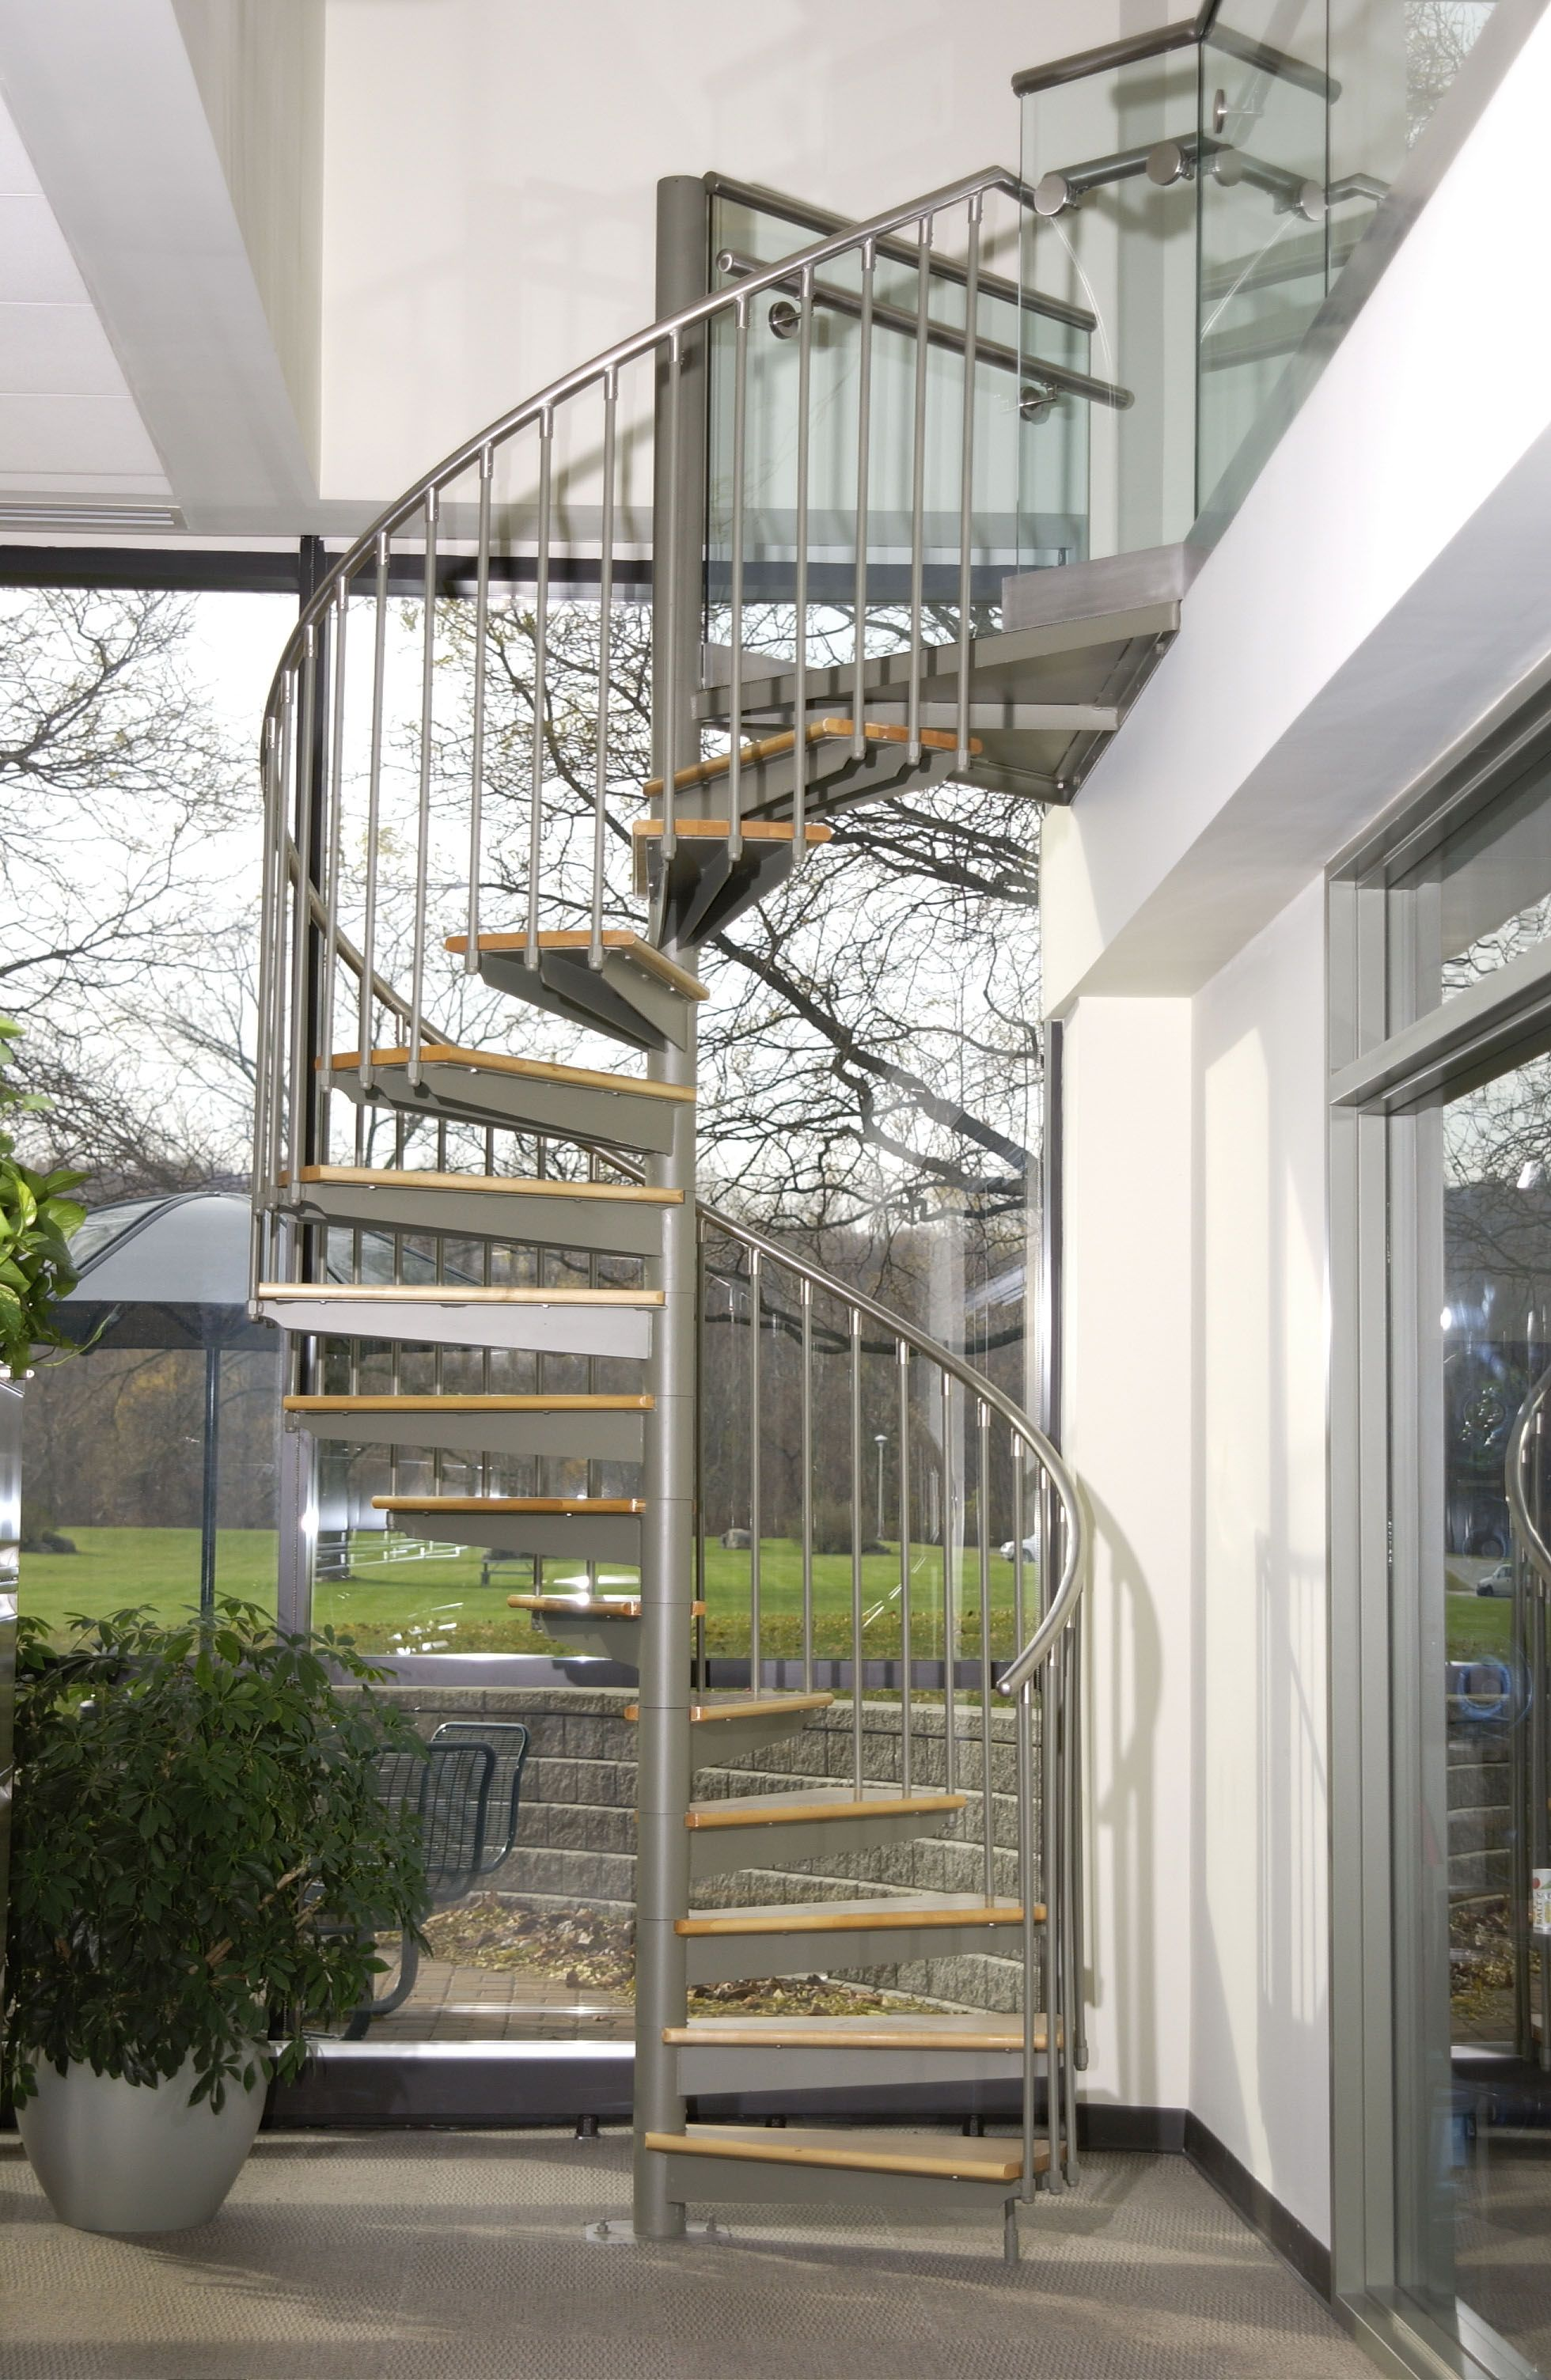 Best Indoor Outdoor Room With A Spiral Stair Stairs 640 x 480